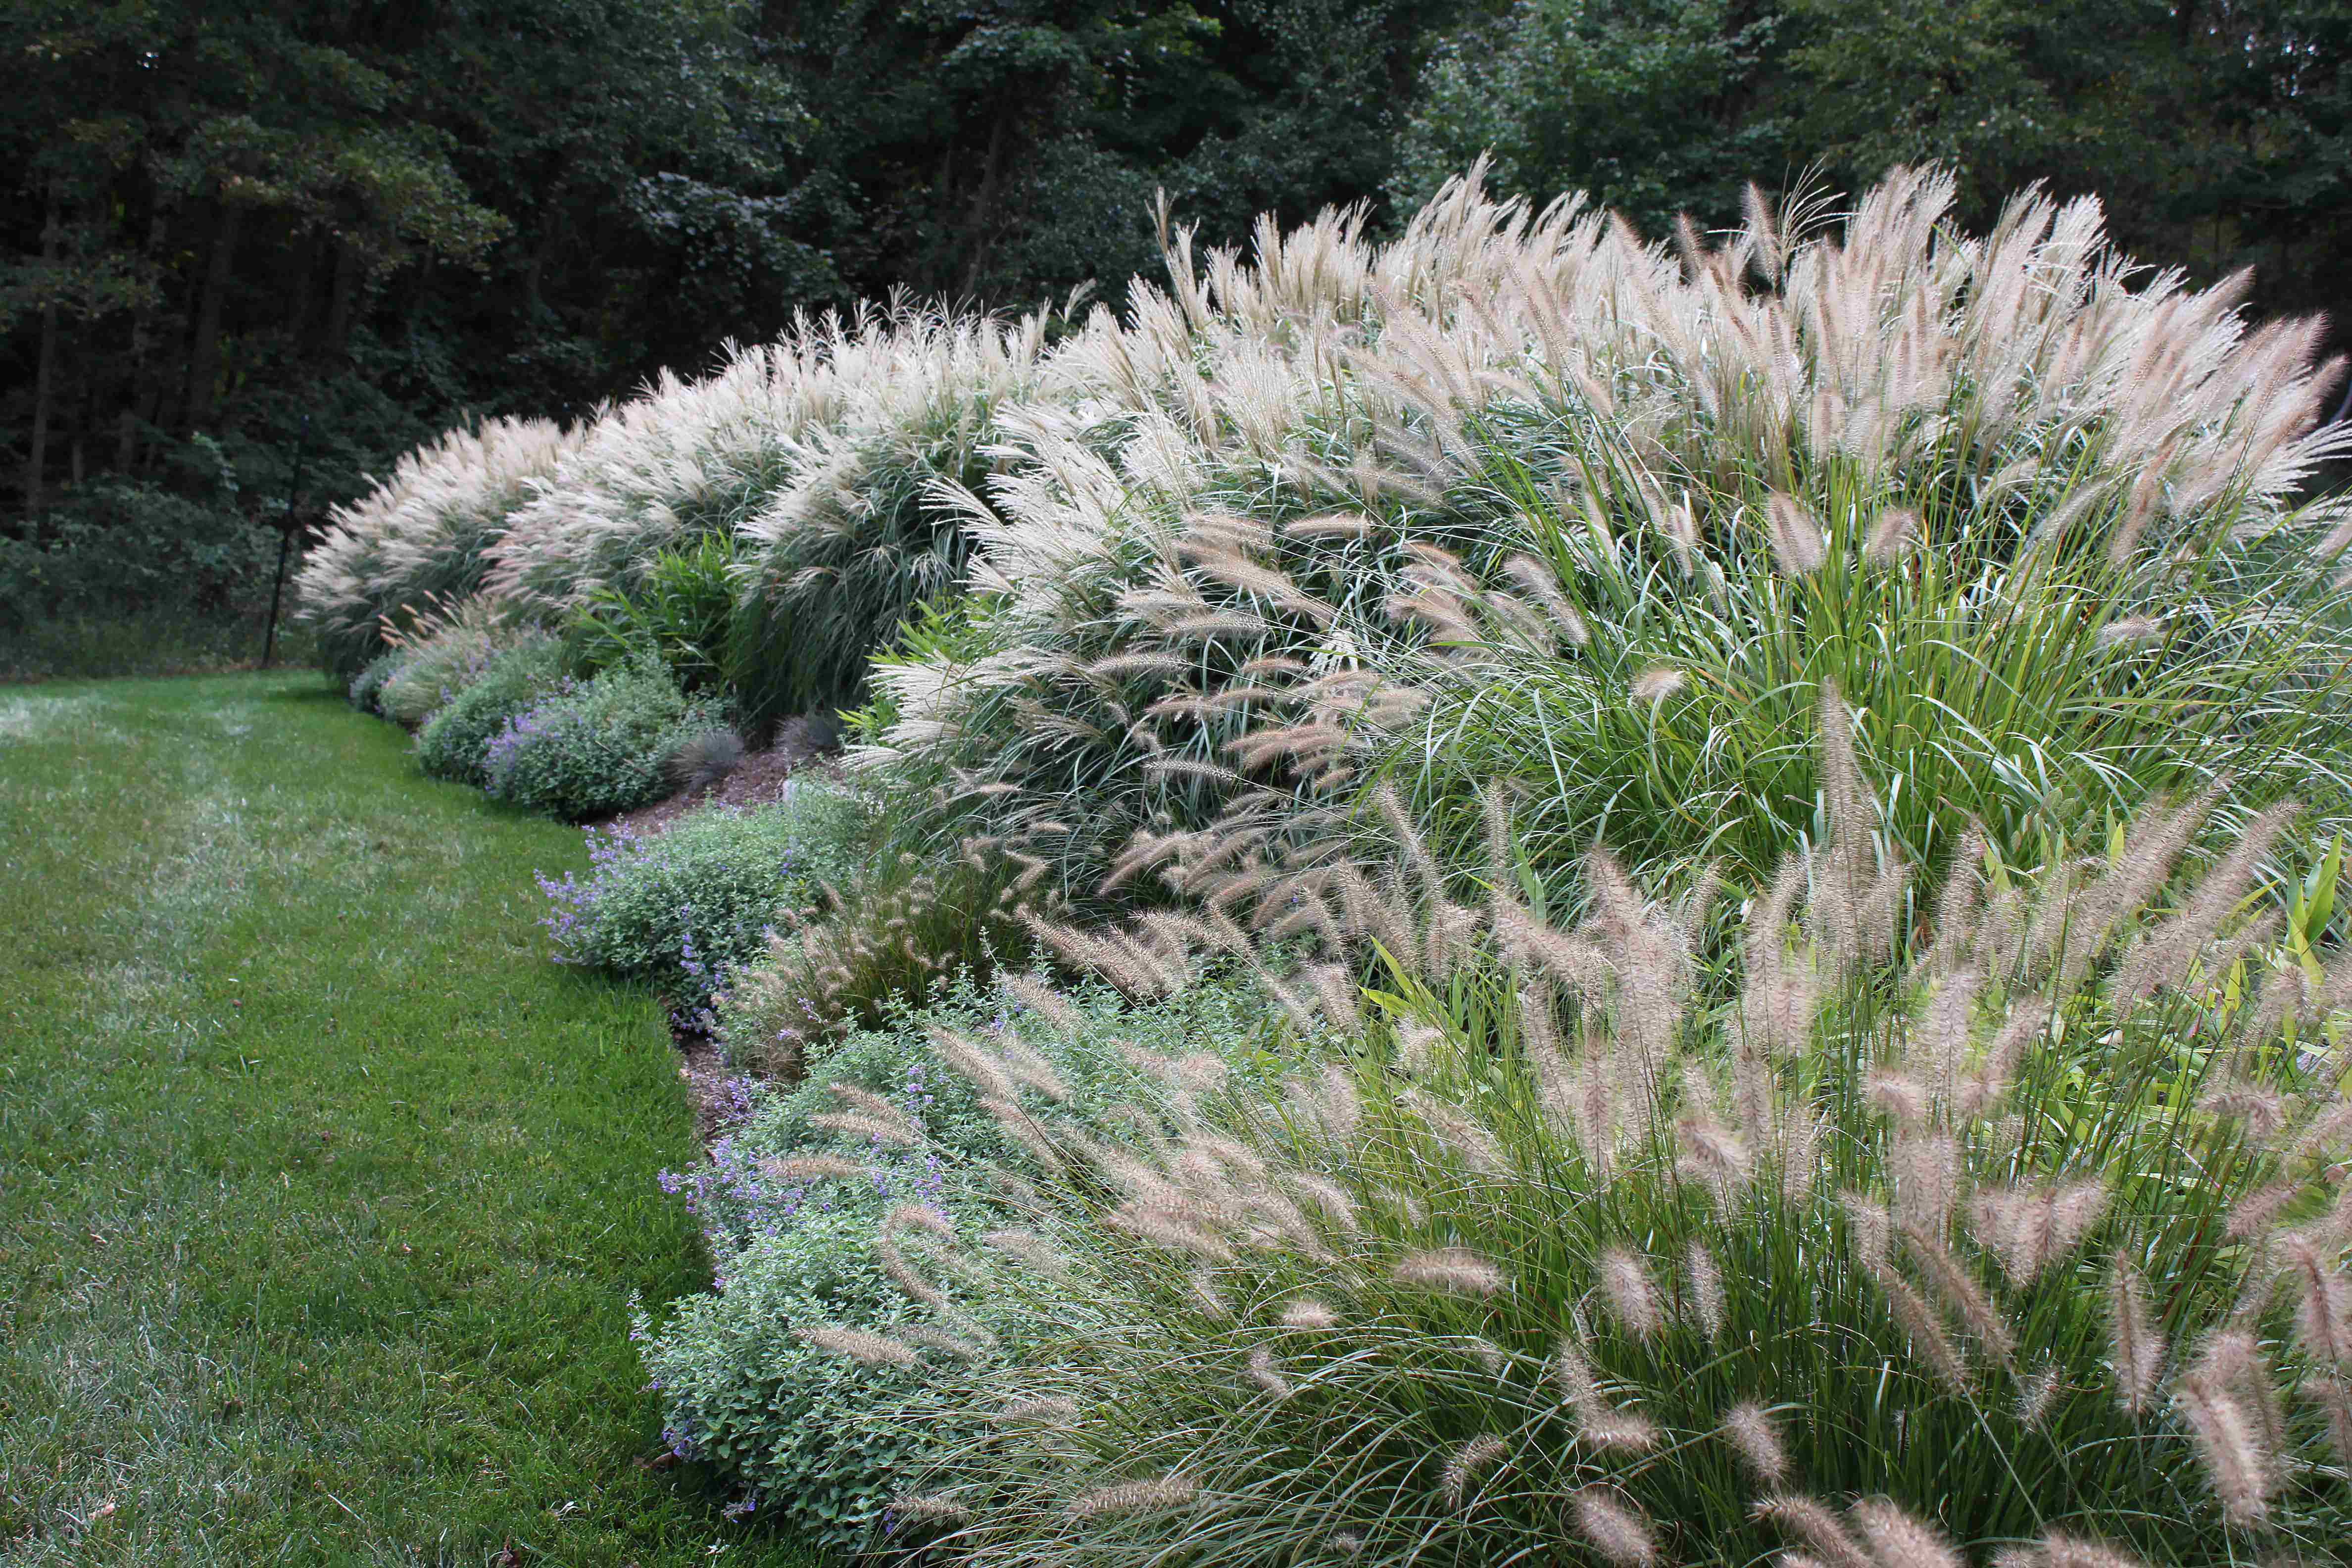 How to select ornamental foliage for privacy screens for Tall ornamental grasses for screening